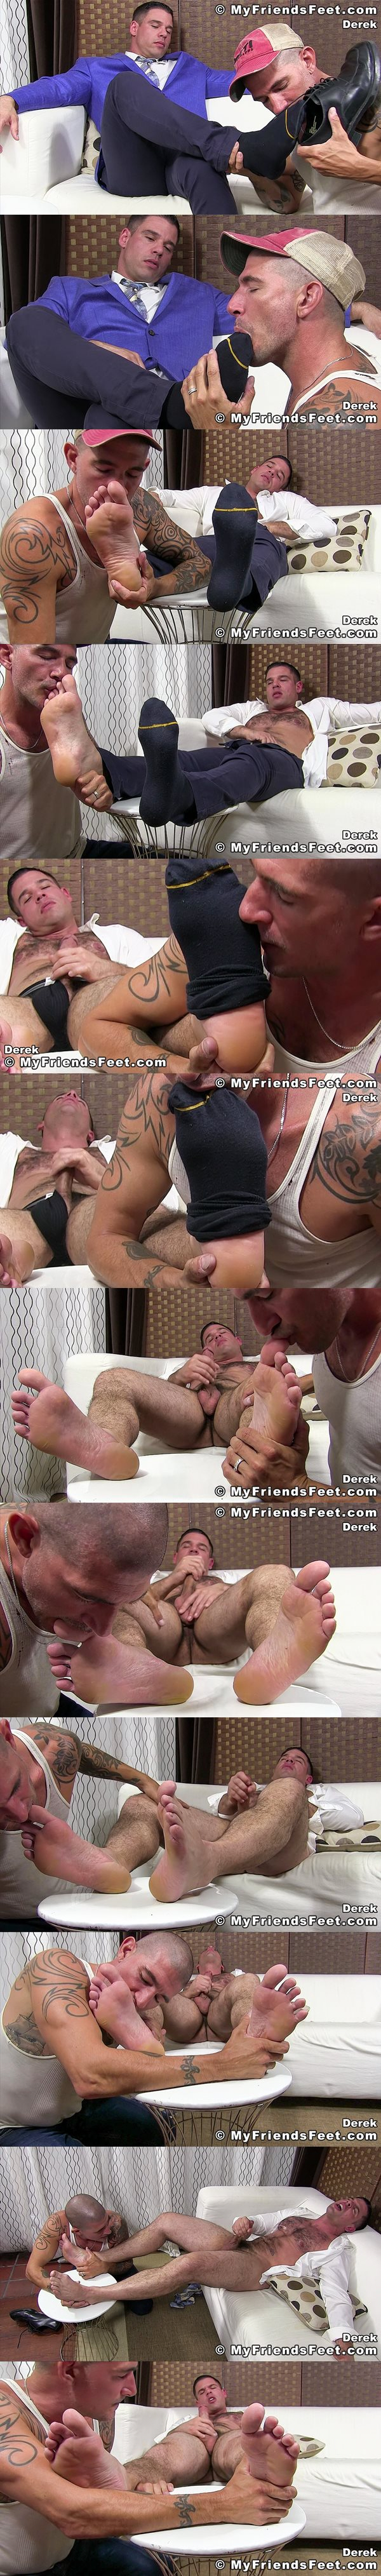 Myfriendsfeet - Derek Atlas and Markus Kage Worshiped 02